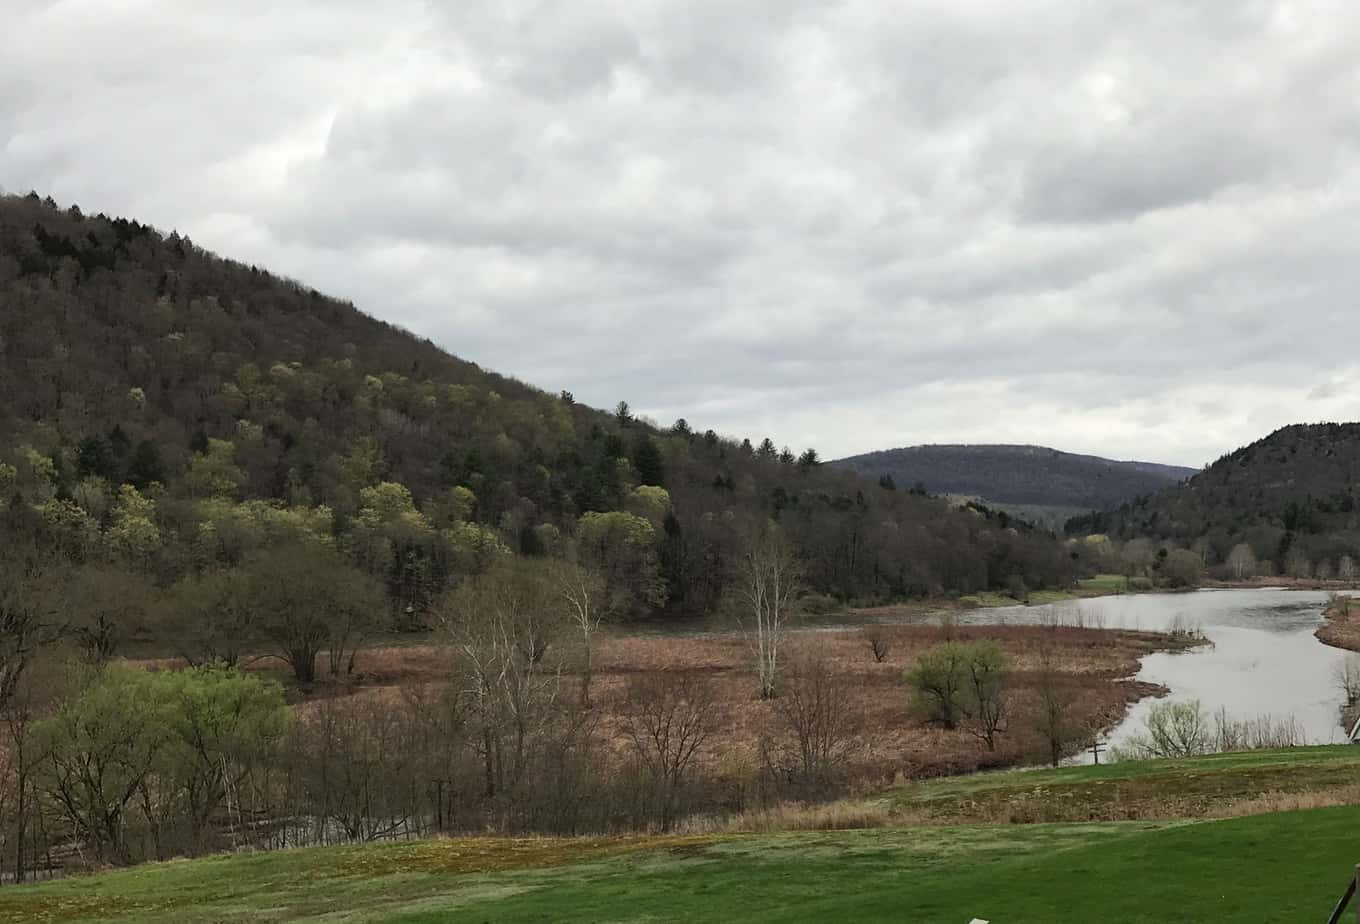 The Delaware River just south of Hancock, N.Y.  PHOTO BY MEG MCGUIRE